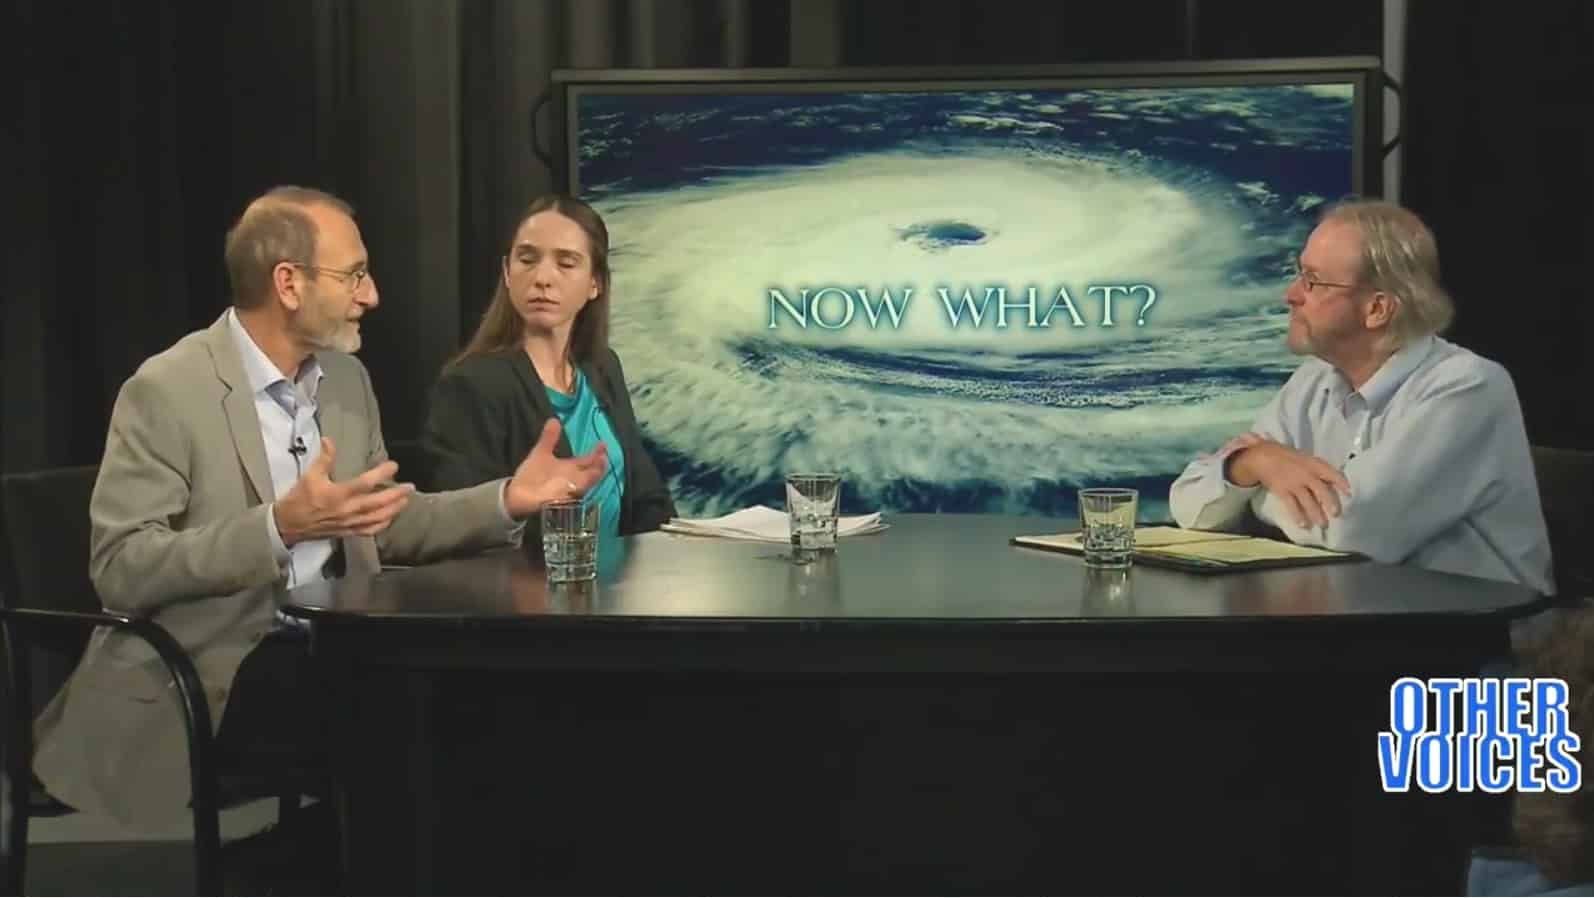 Video: One Year After Paris Climate Agreement: Now What?